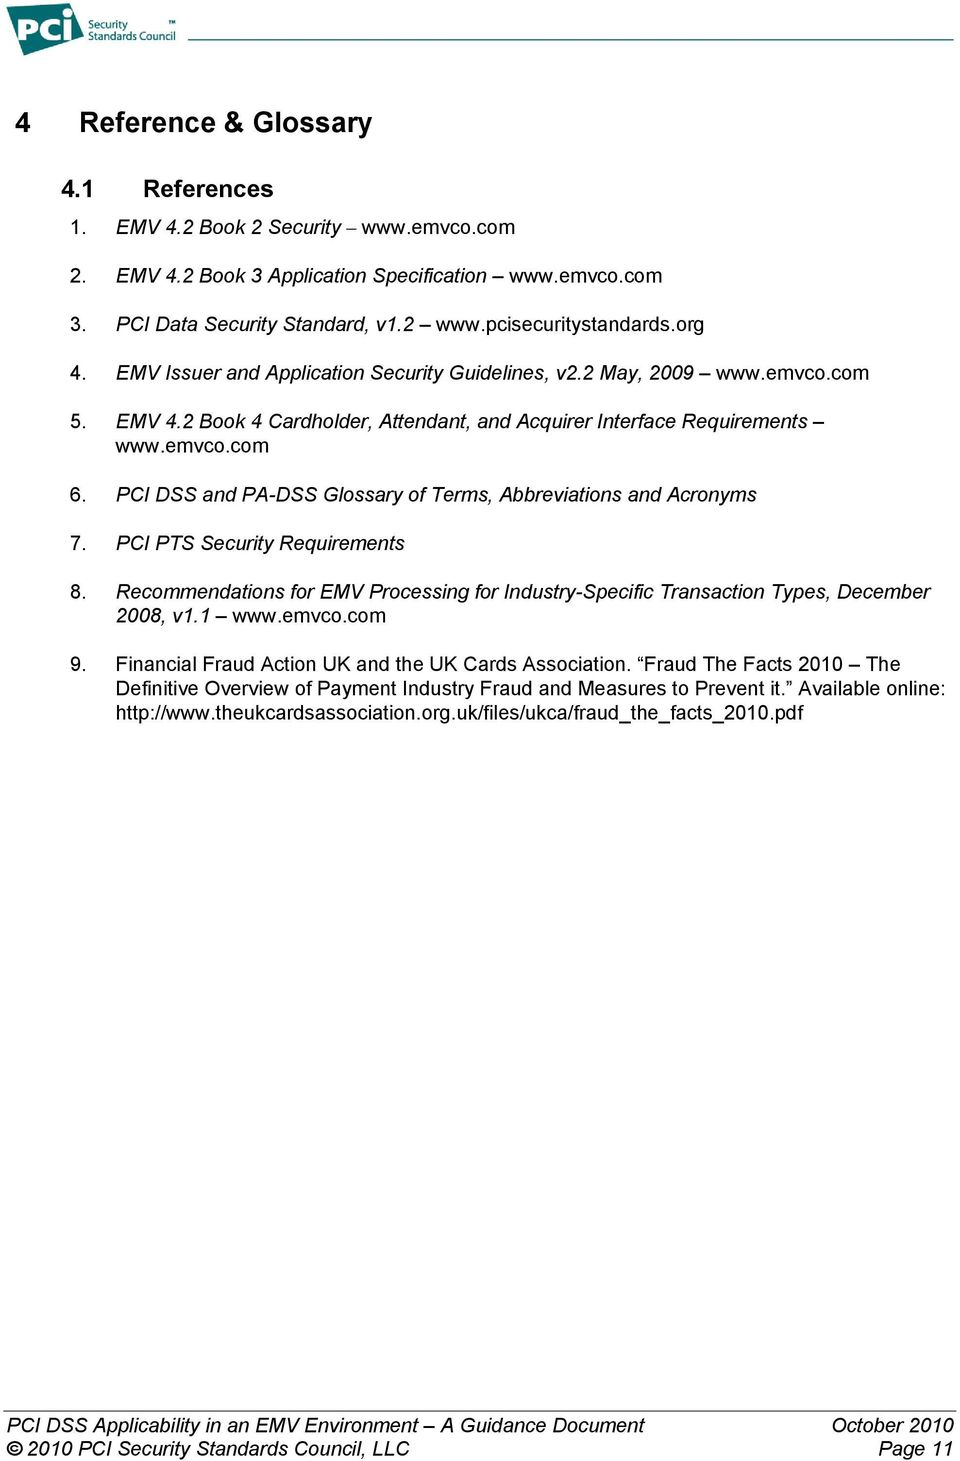 PCI DSS and PA-DSS Glossary of Terms, Abbreviations and Acronyms 7. PCI PTS Security Requirements 8. Recommendations for EMV Processing for Industry-Specific Transaction Types, December 2008, v1.